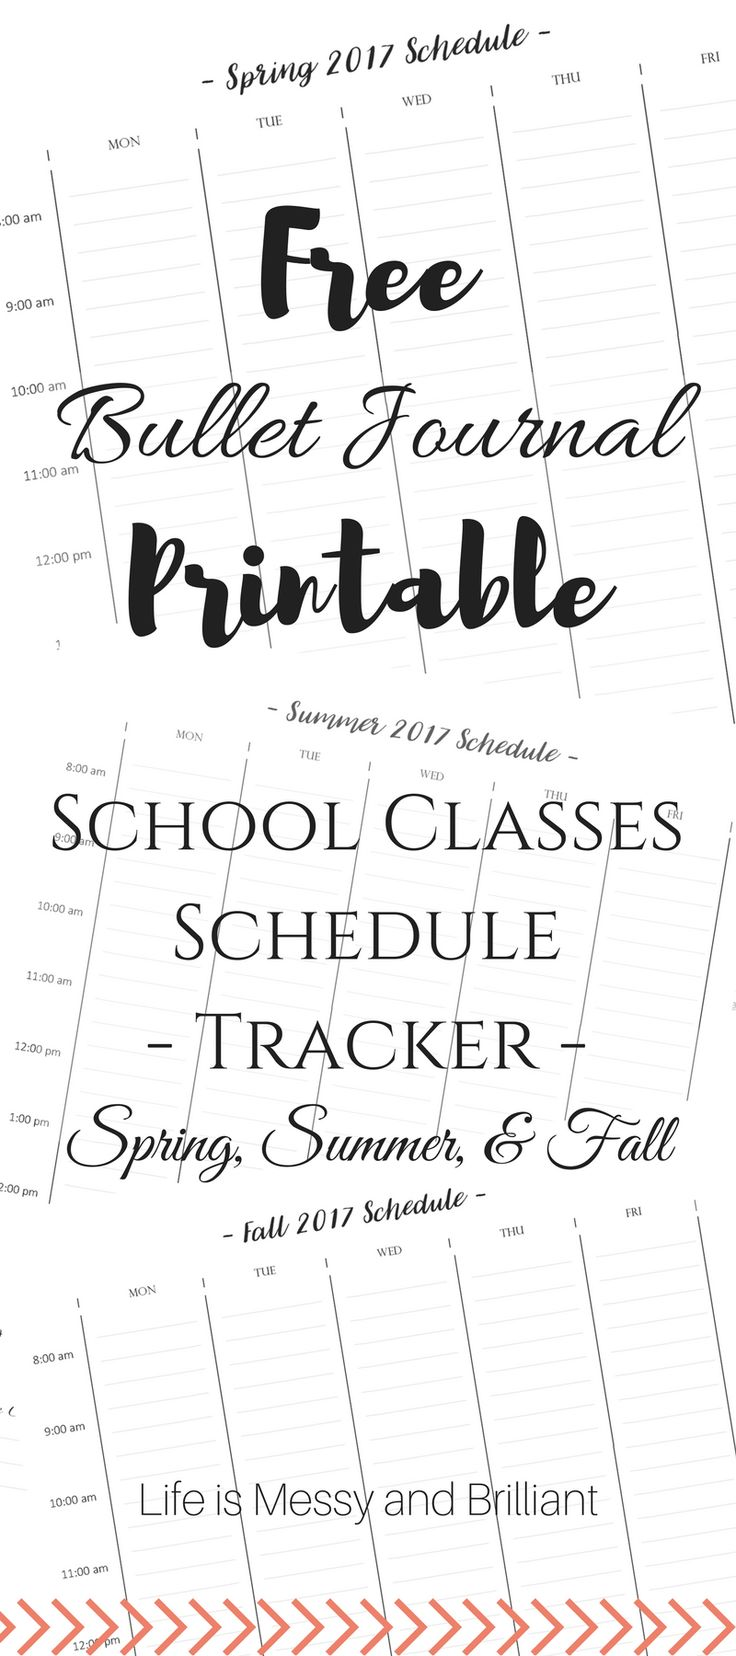 Are you ready for new school semester? My classes start on Monday and